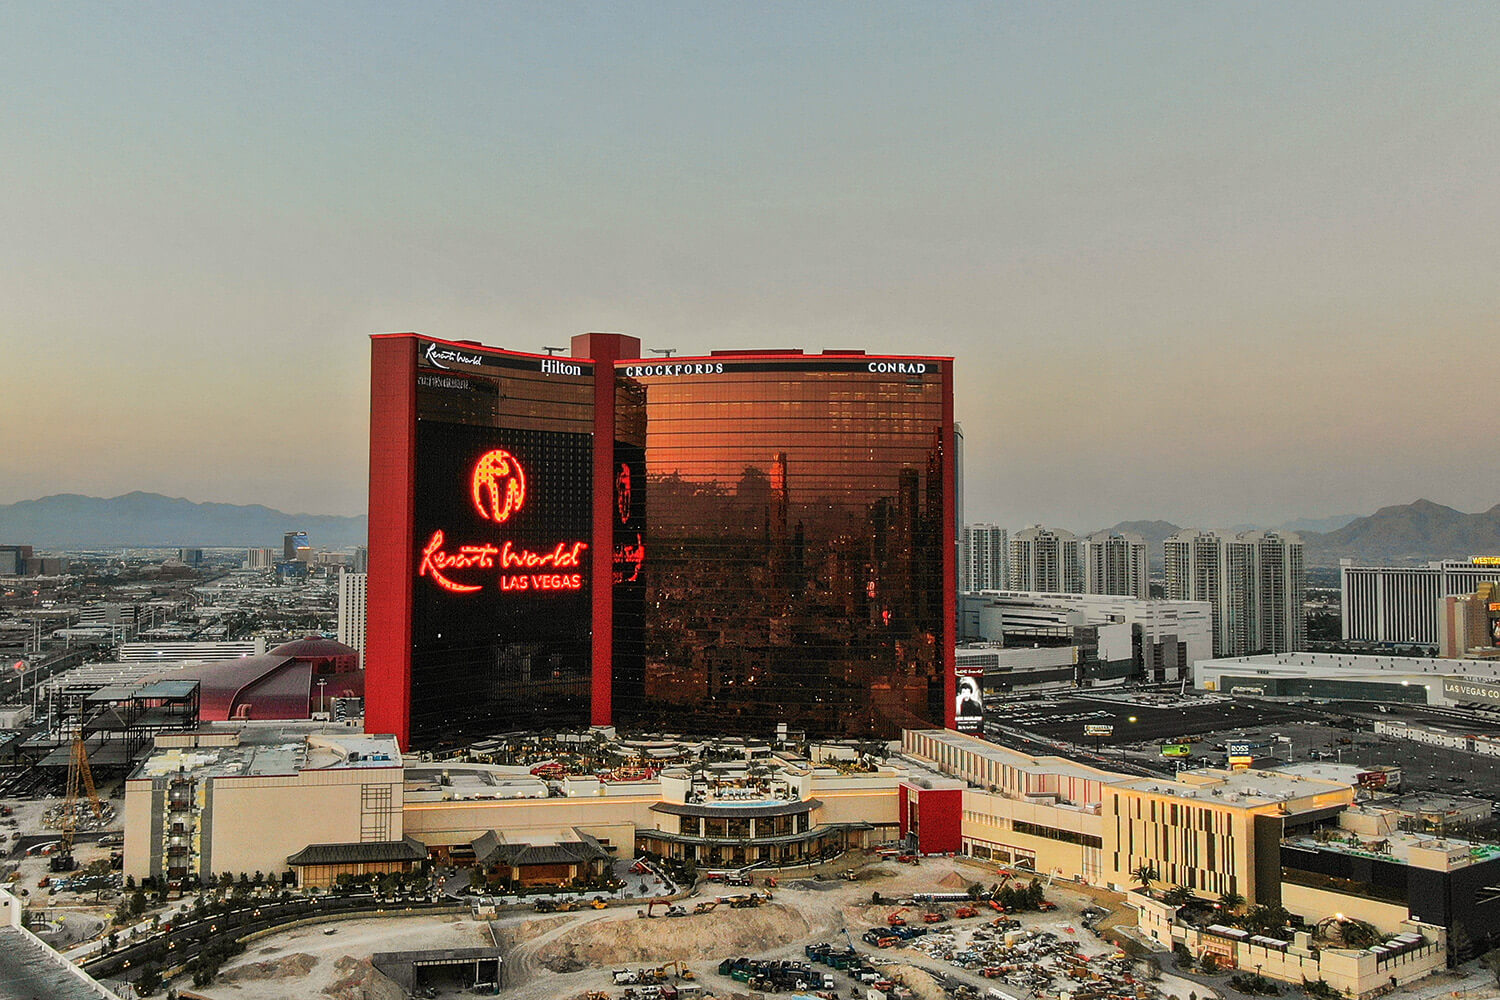 resorts-world-las-vegas-comes-alive-with-cheers,-parties